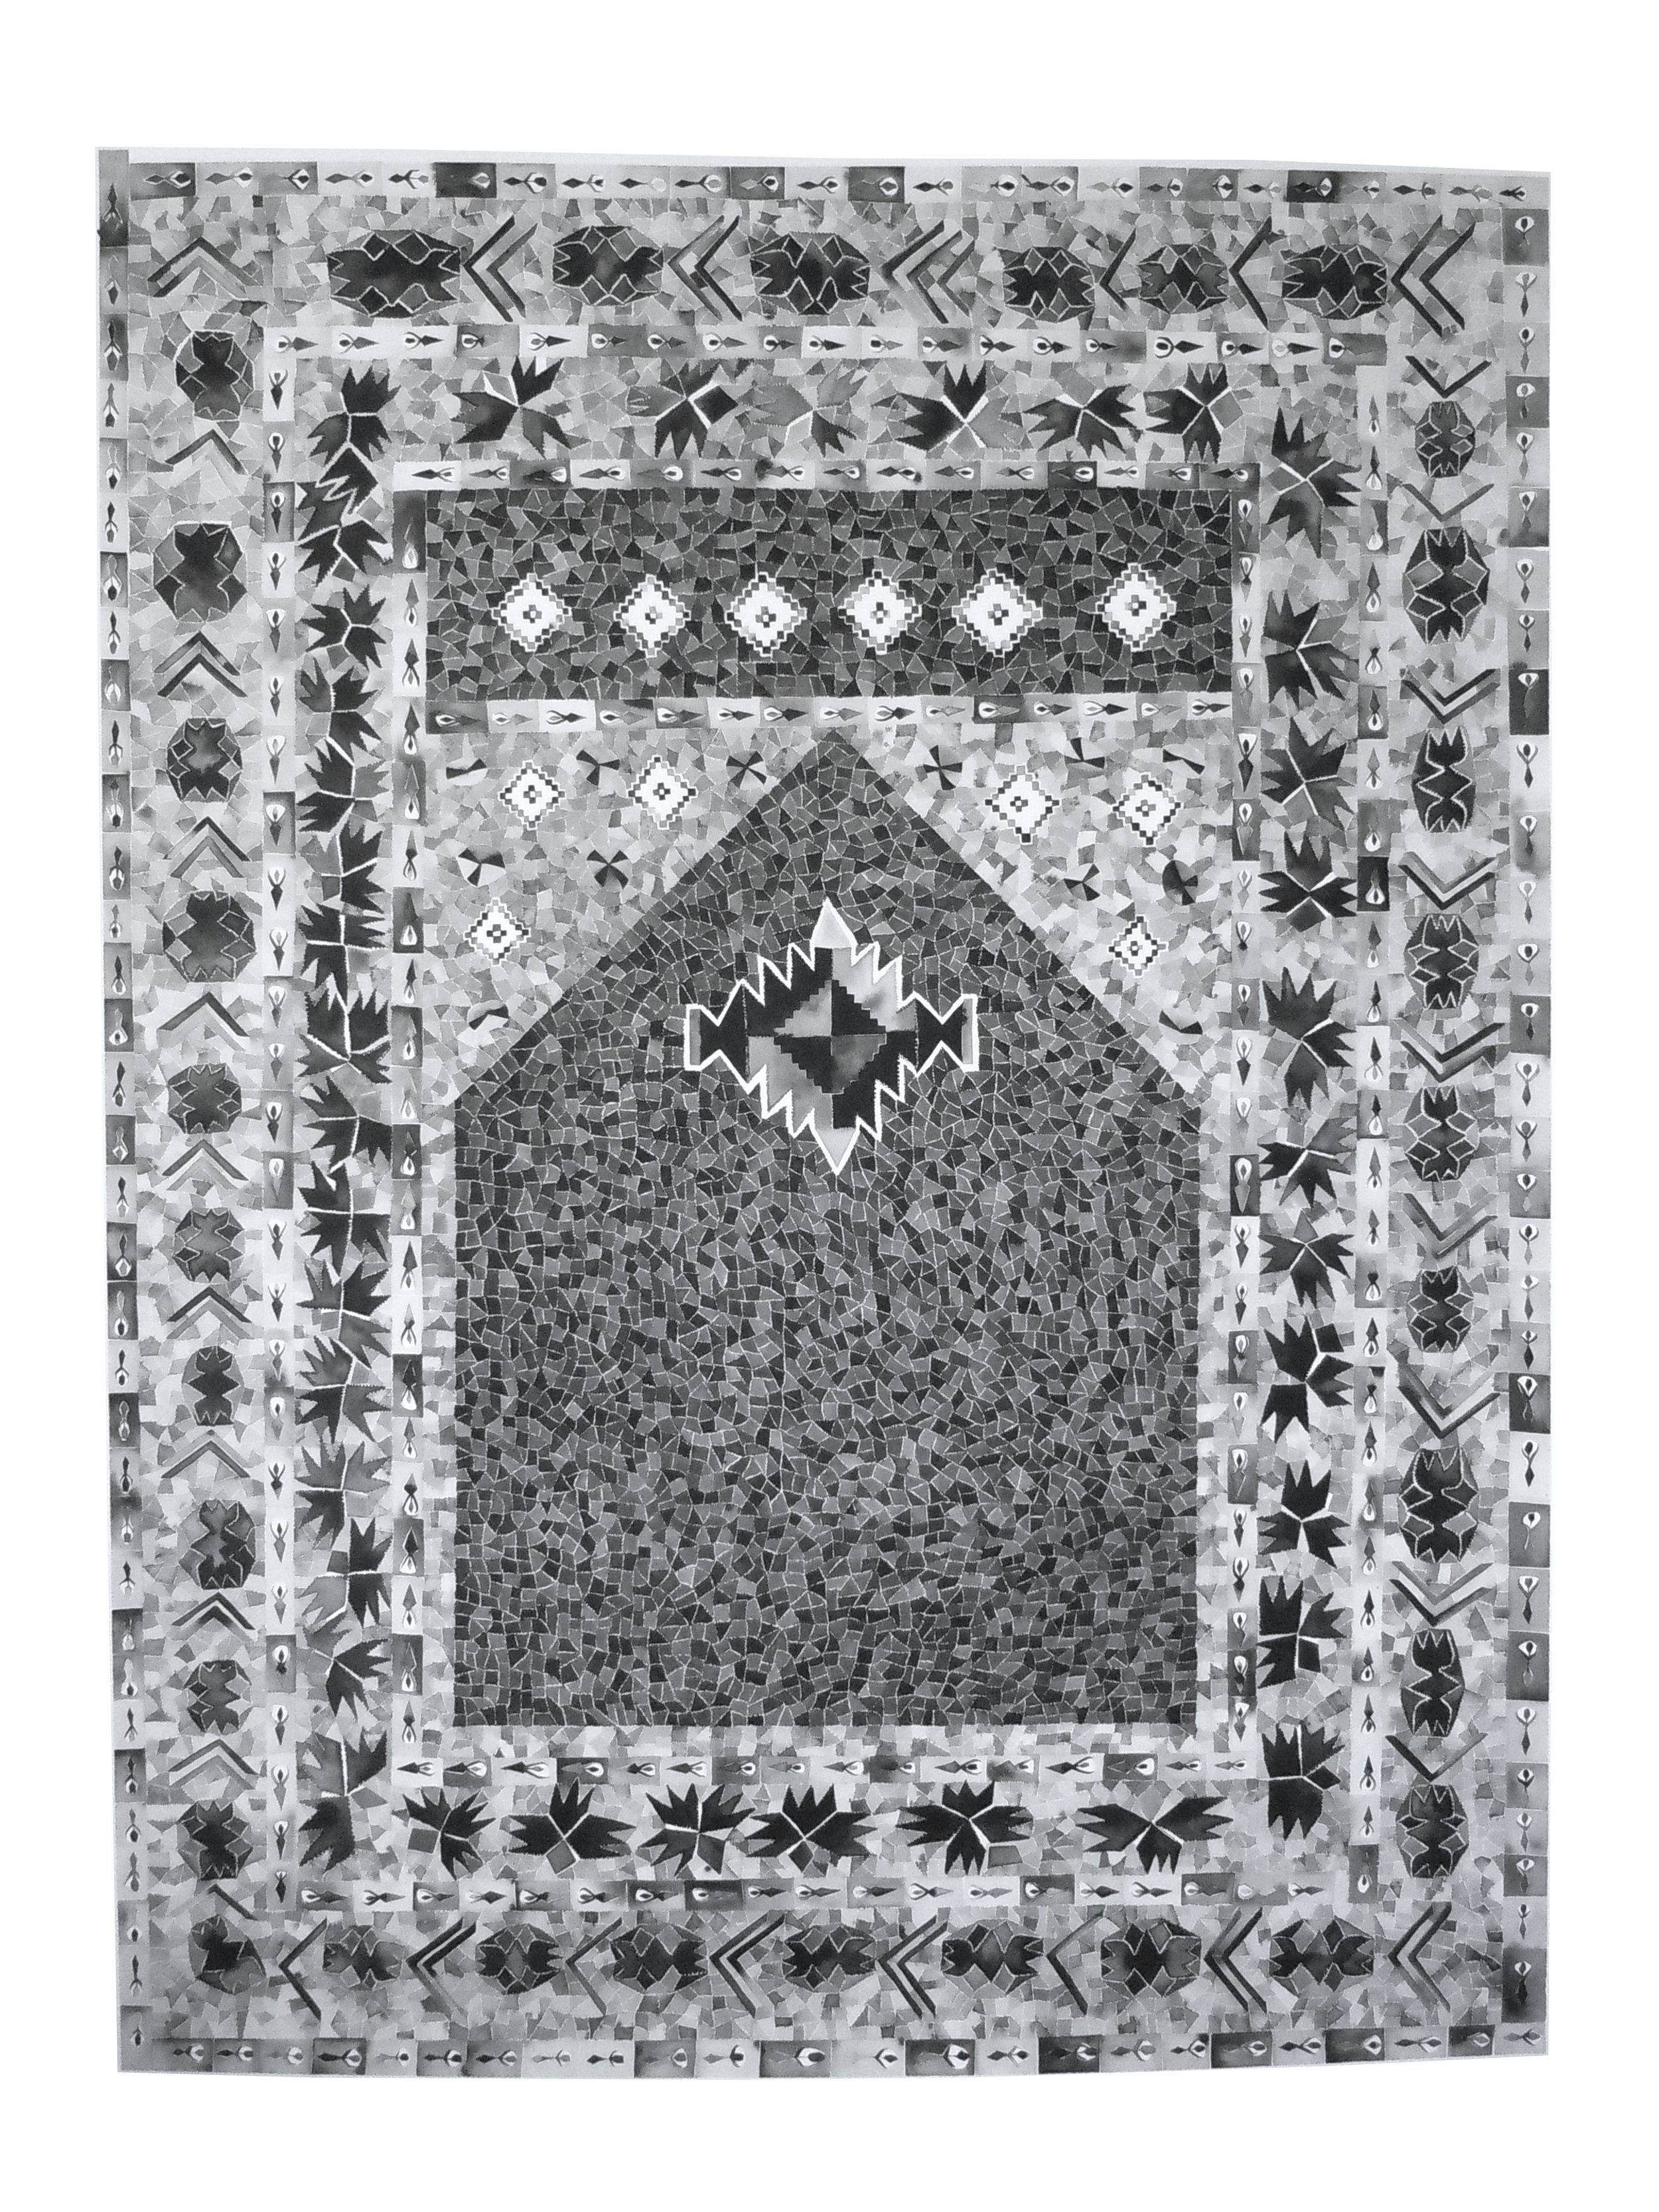 Grey Prayer Rug, Iraq  61x47 inches, sumi ink on paper